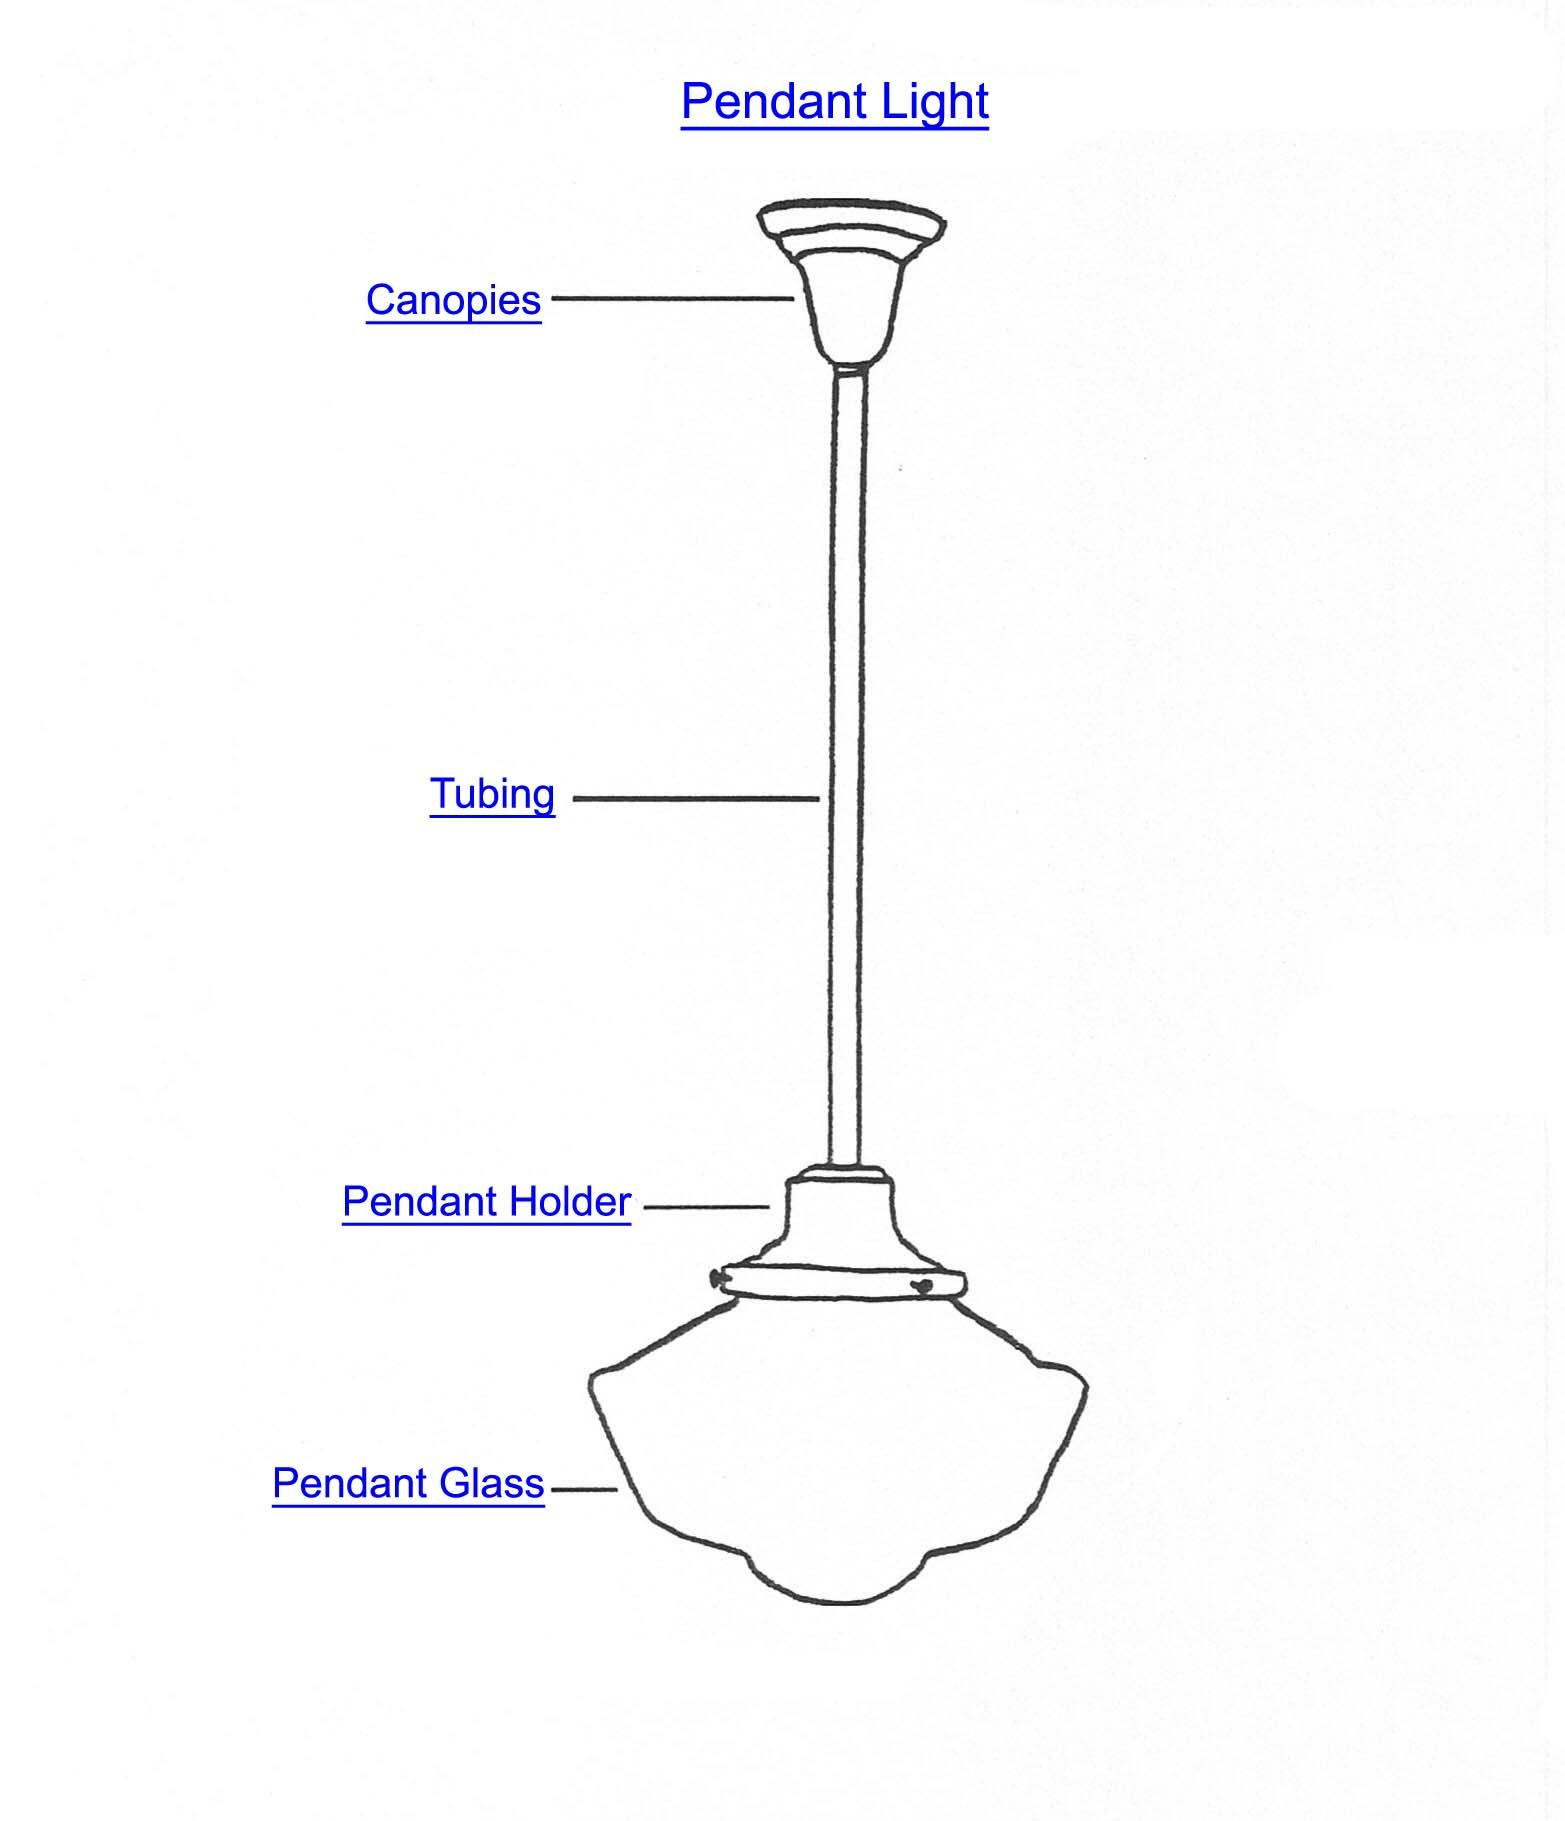 Pendant Light Parts By Name In 2019 Light Fixture Parts